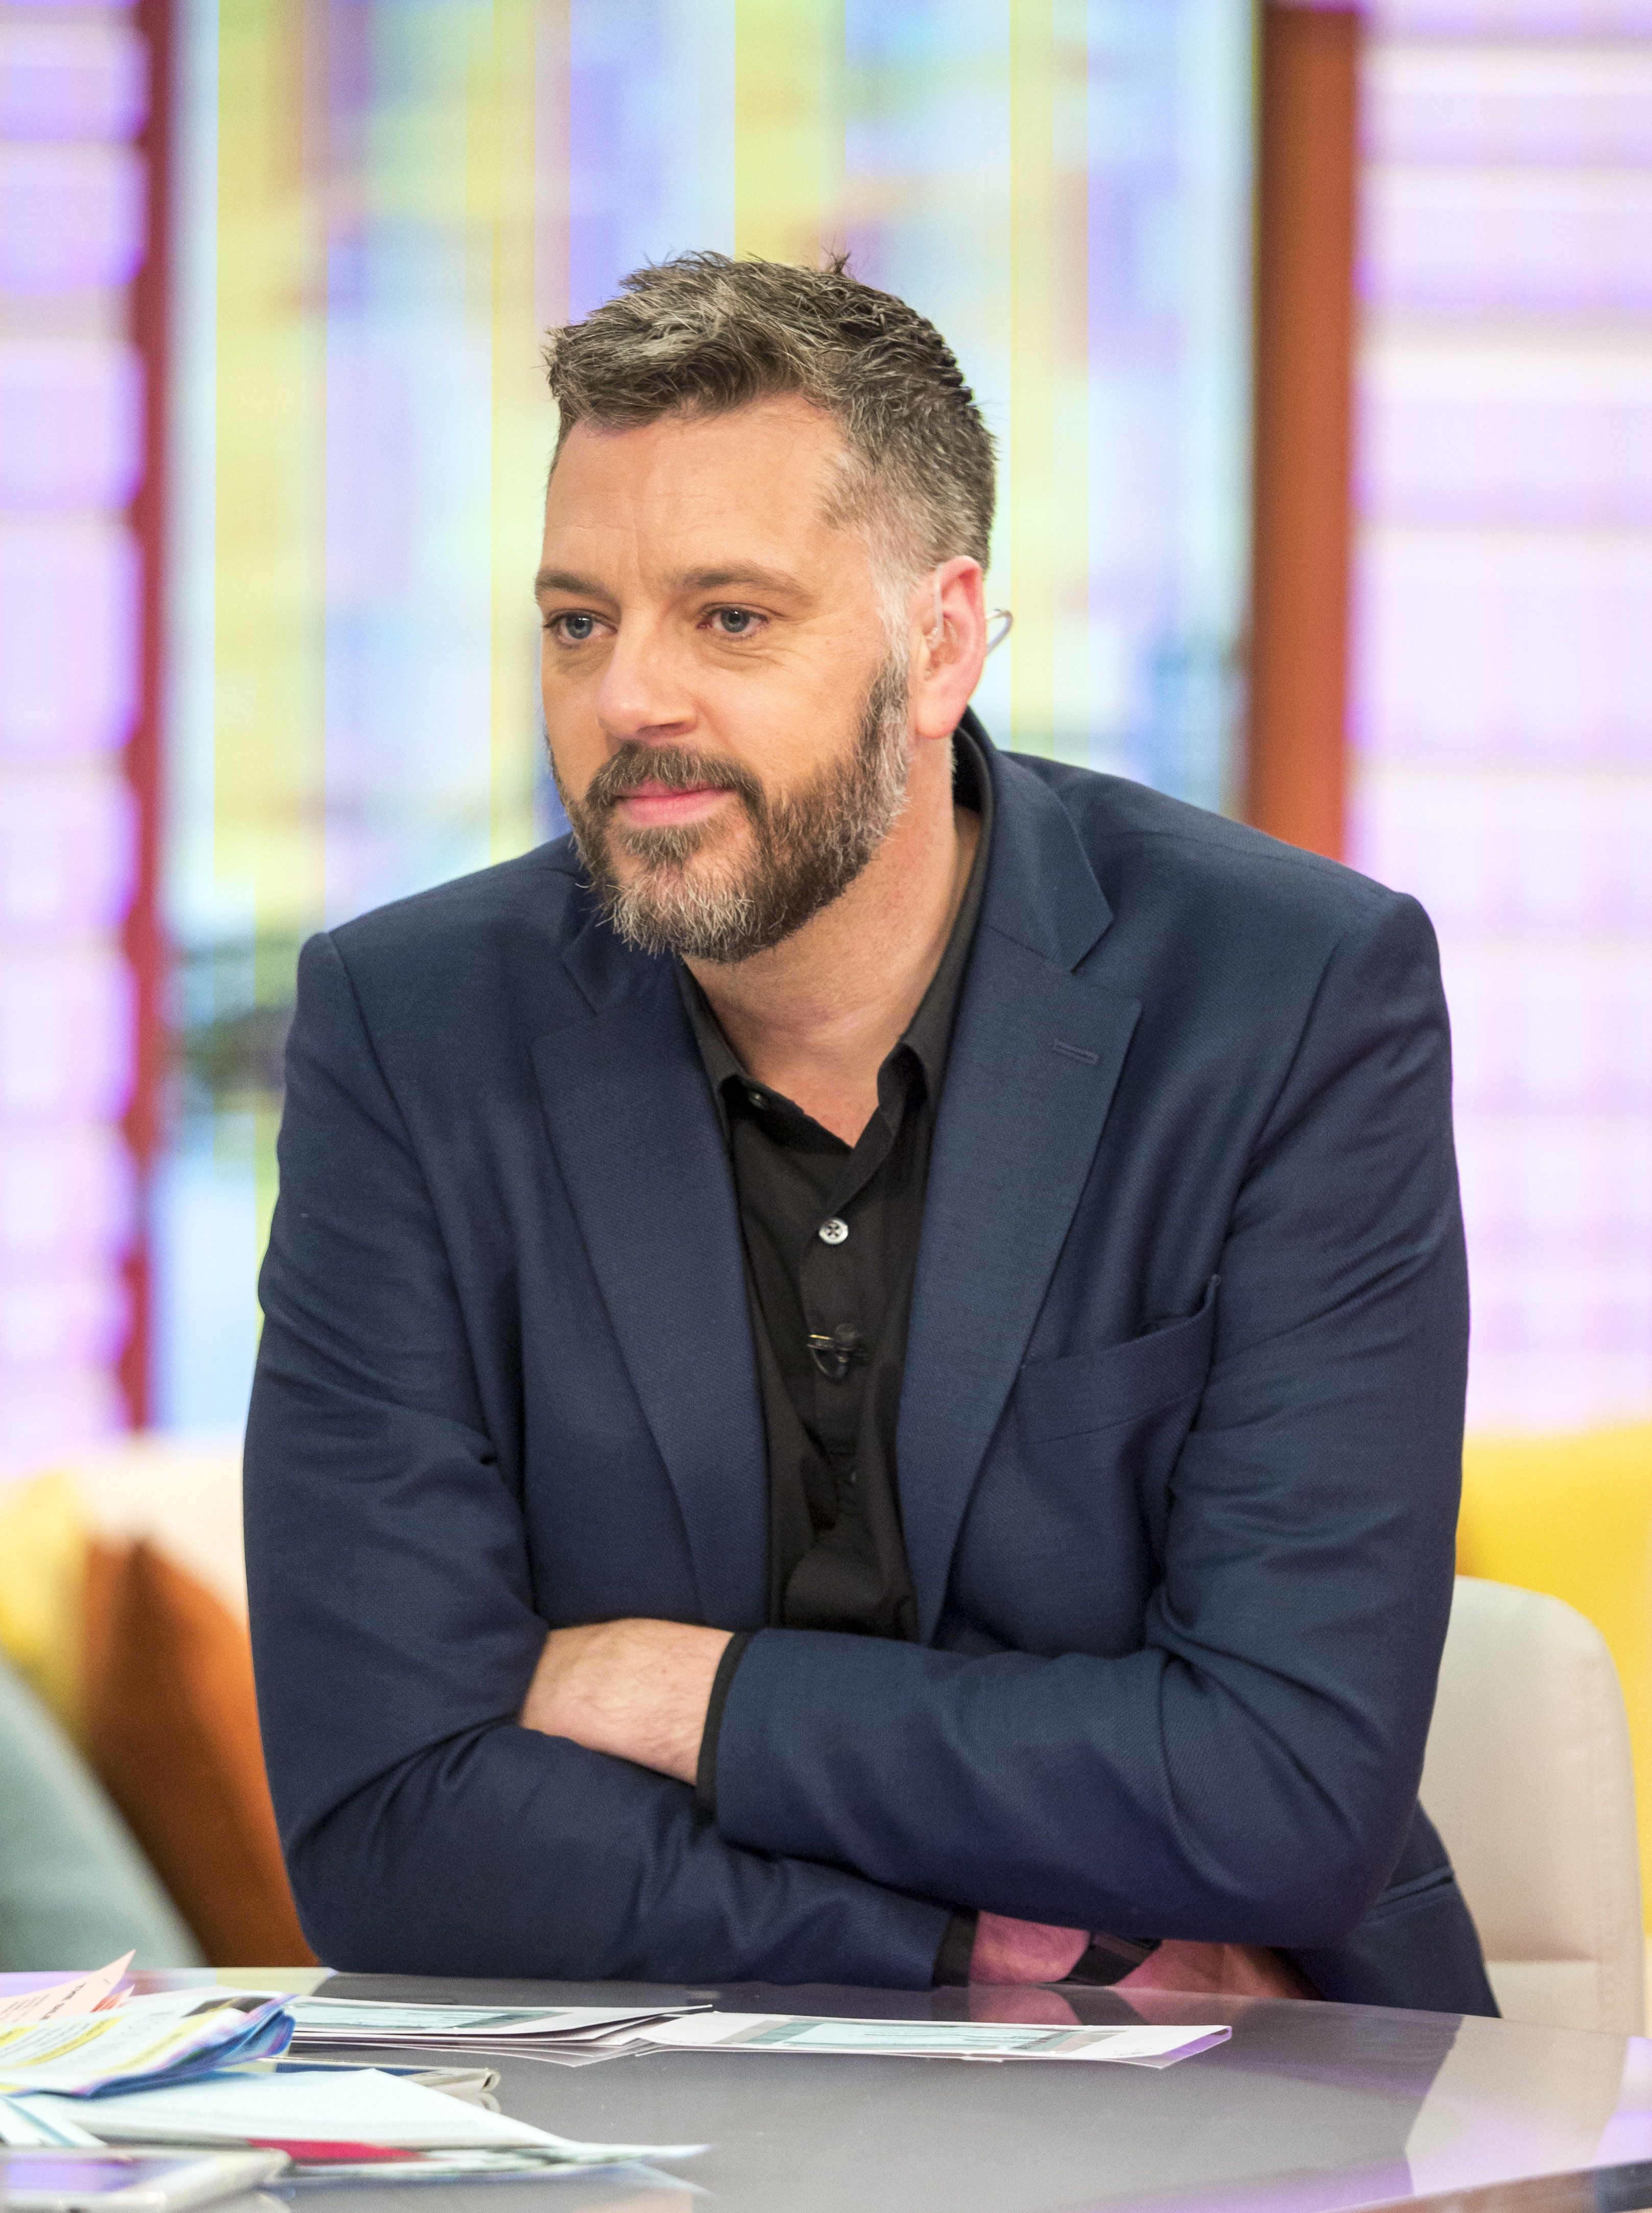 Comedian Iain Lee Details Lasting Effect Of Childhood Sexual